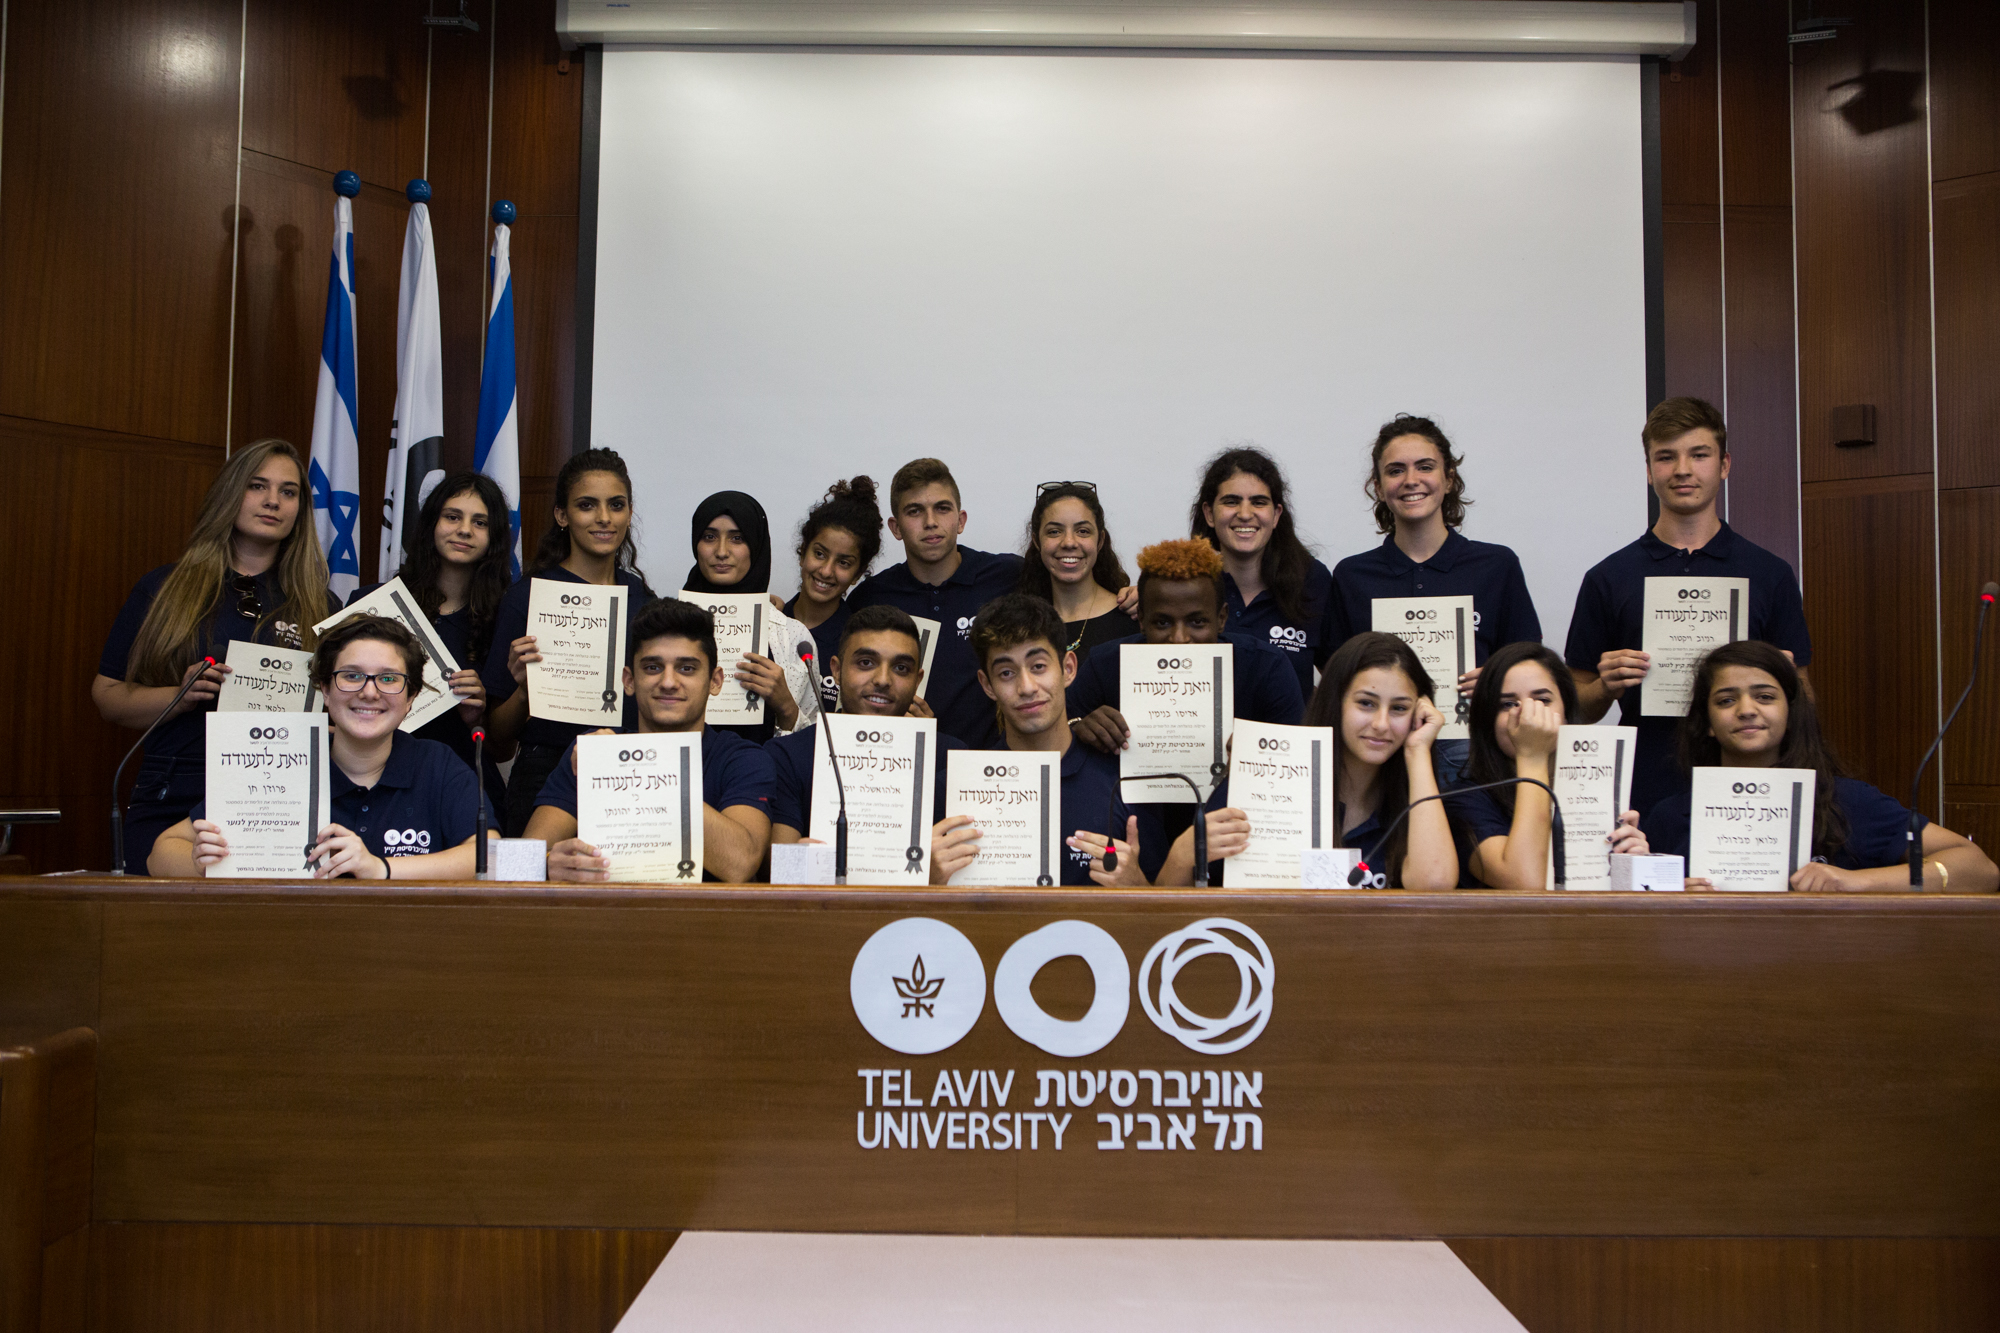 Tel Aviv Youth University picture from ceremony 2017